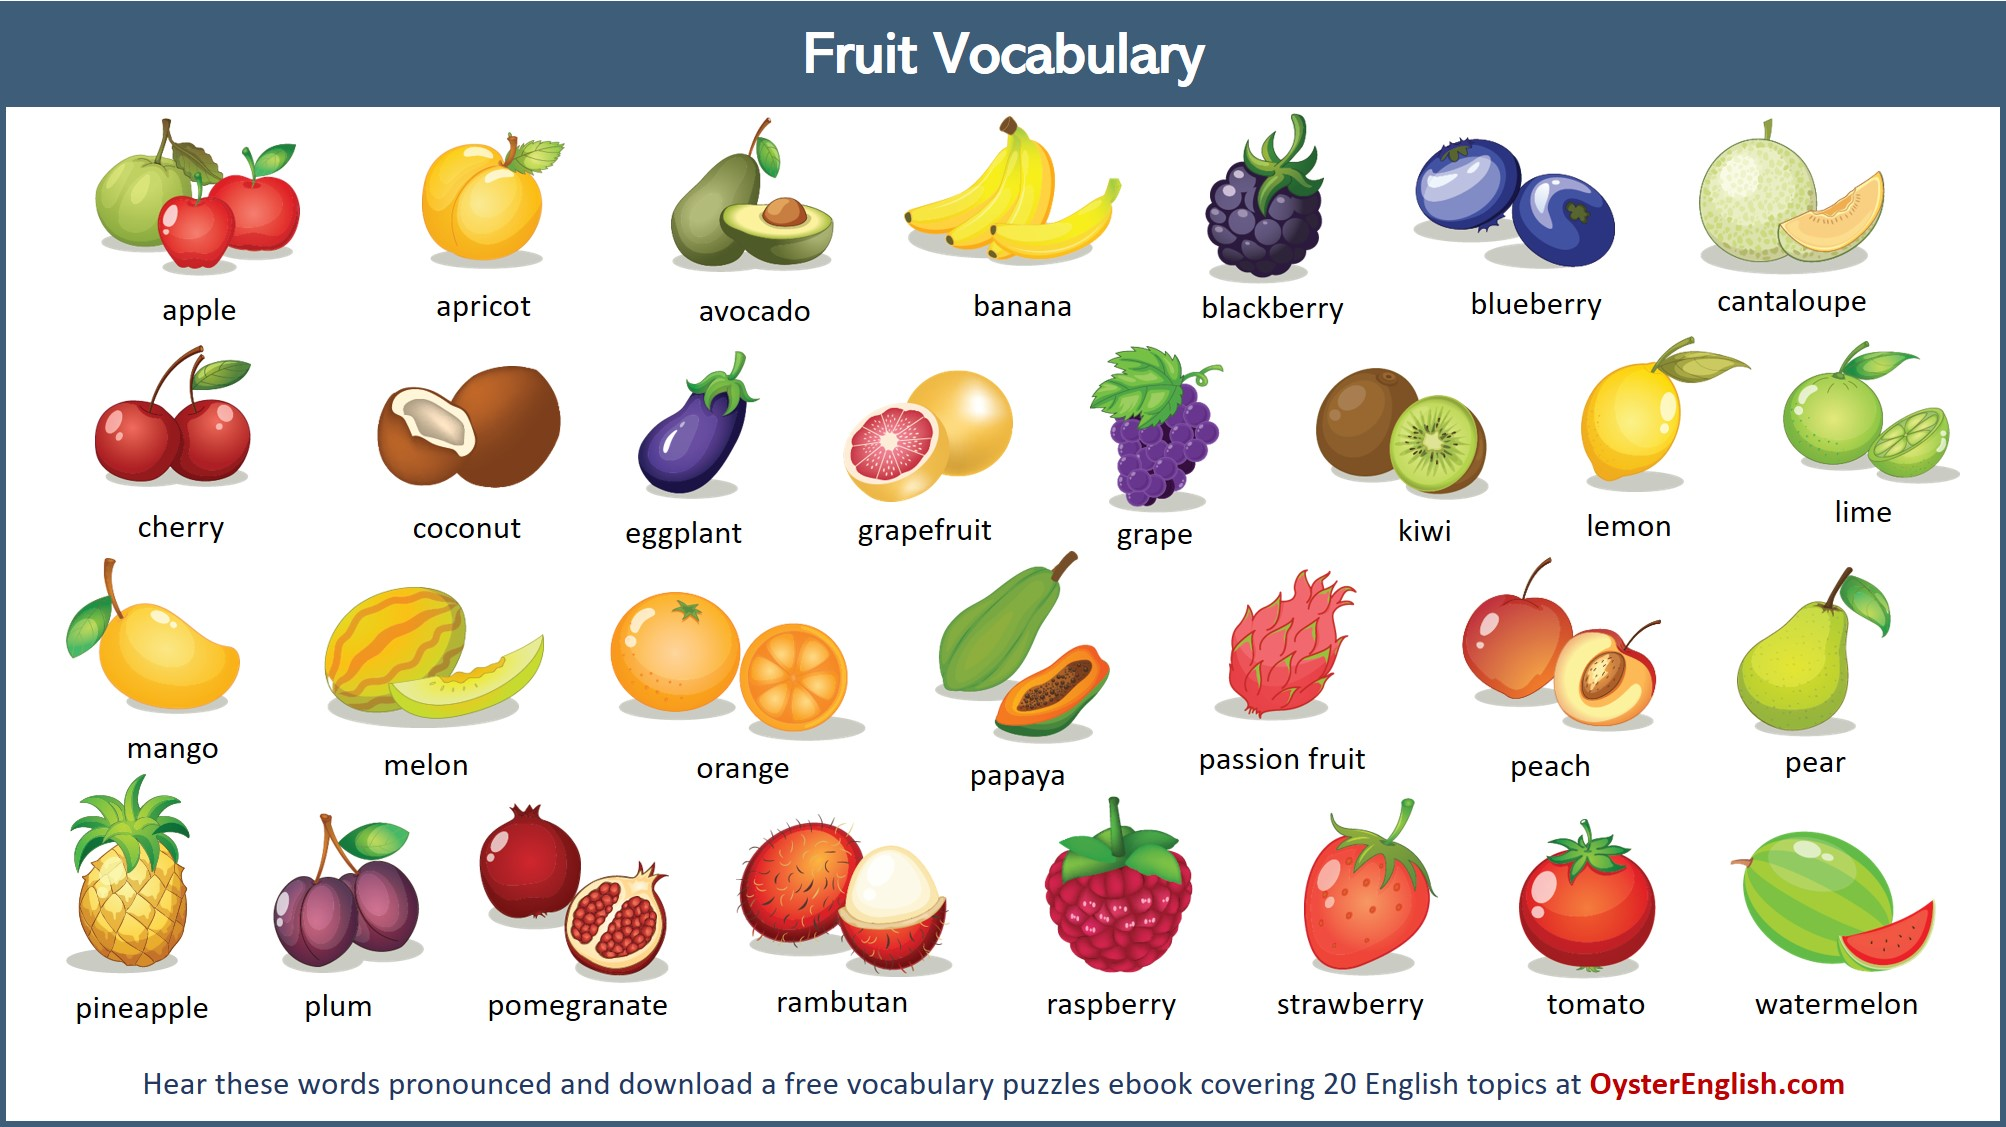 A collection of all of the different types of fruit illustrations featured on this page.